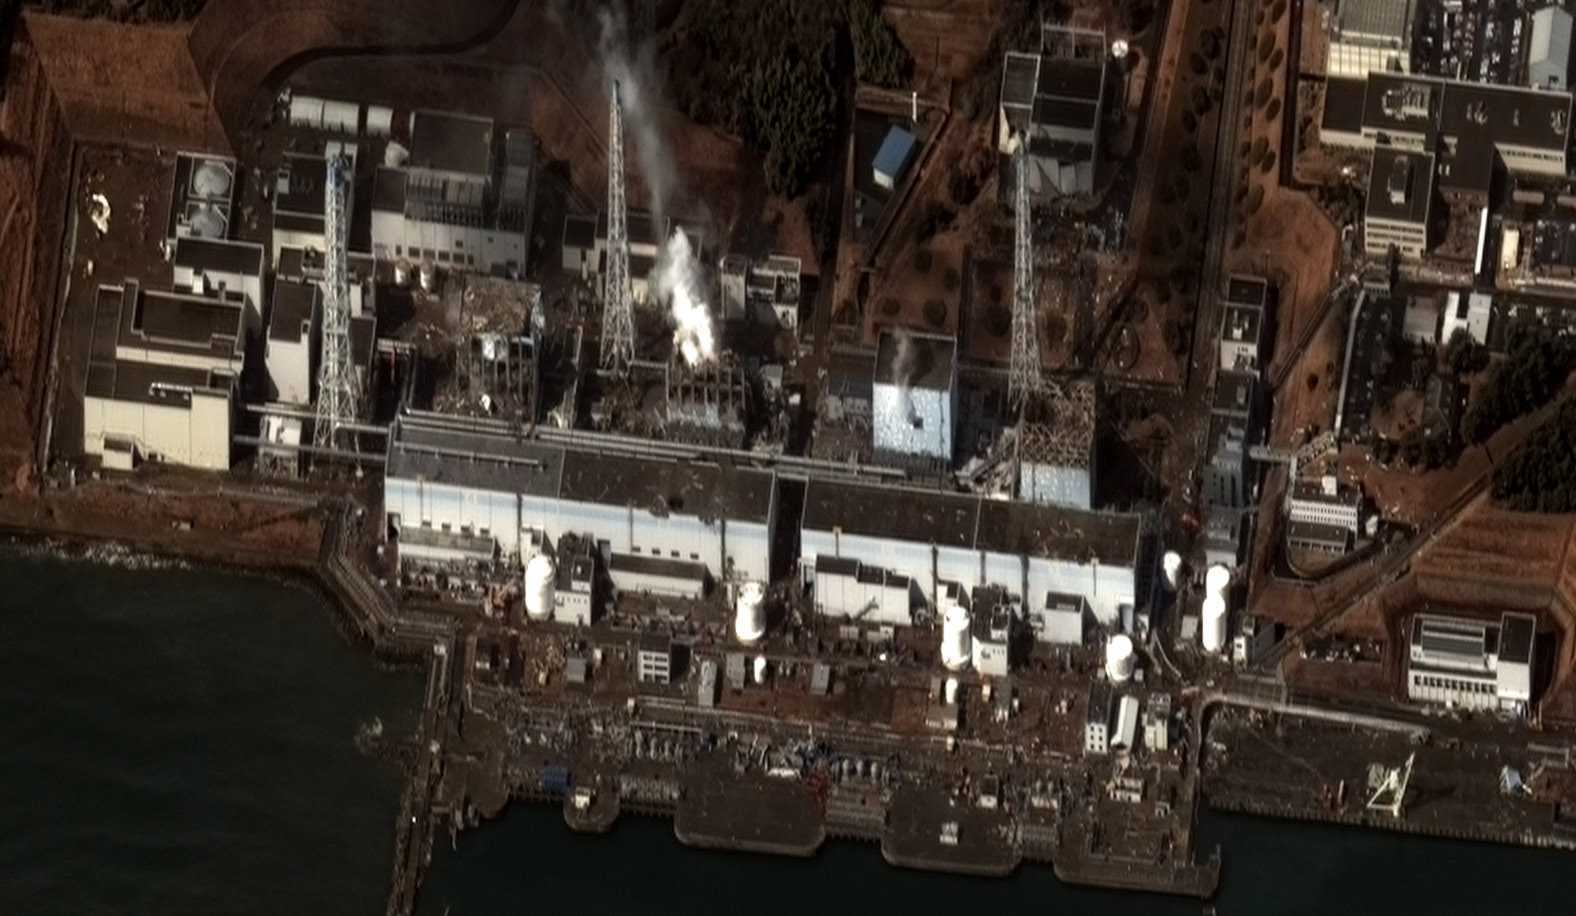 Digitalglobe: 16.03.2011, 9.36 Uhr: Fukushima 1, Block 1-4